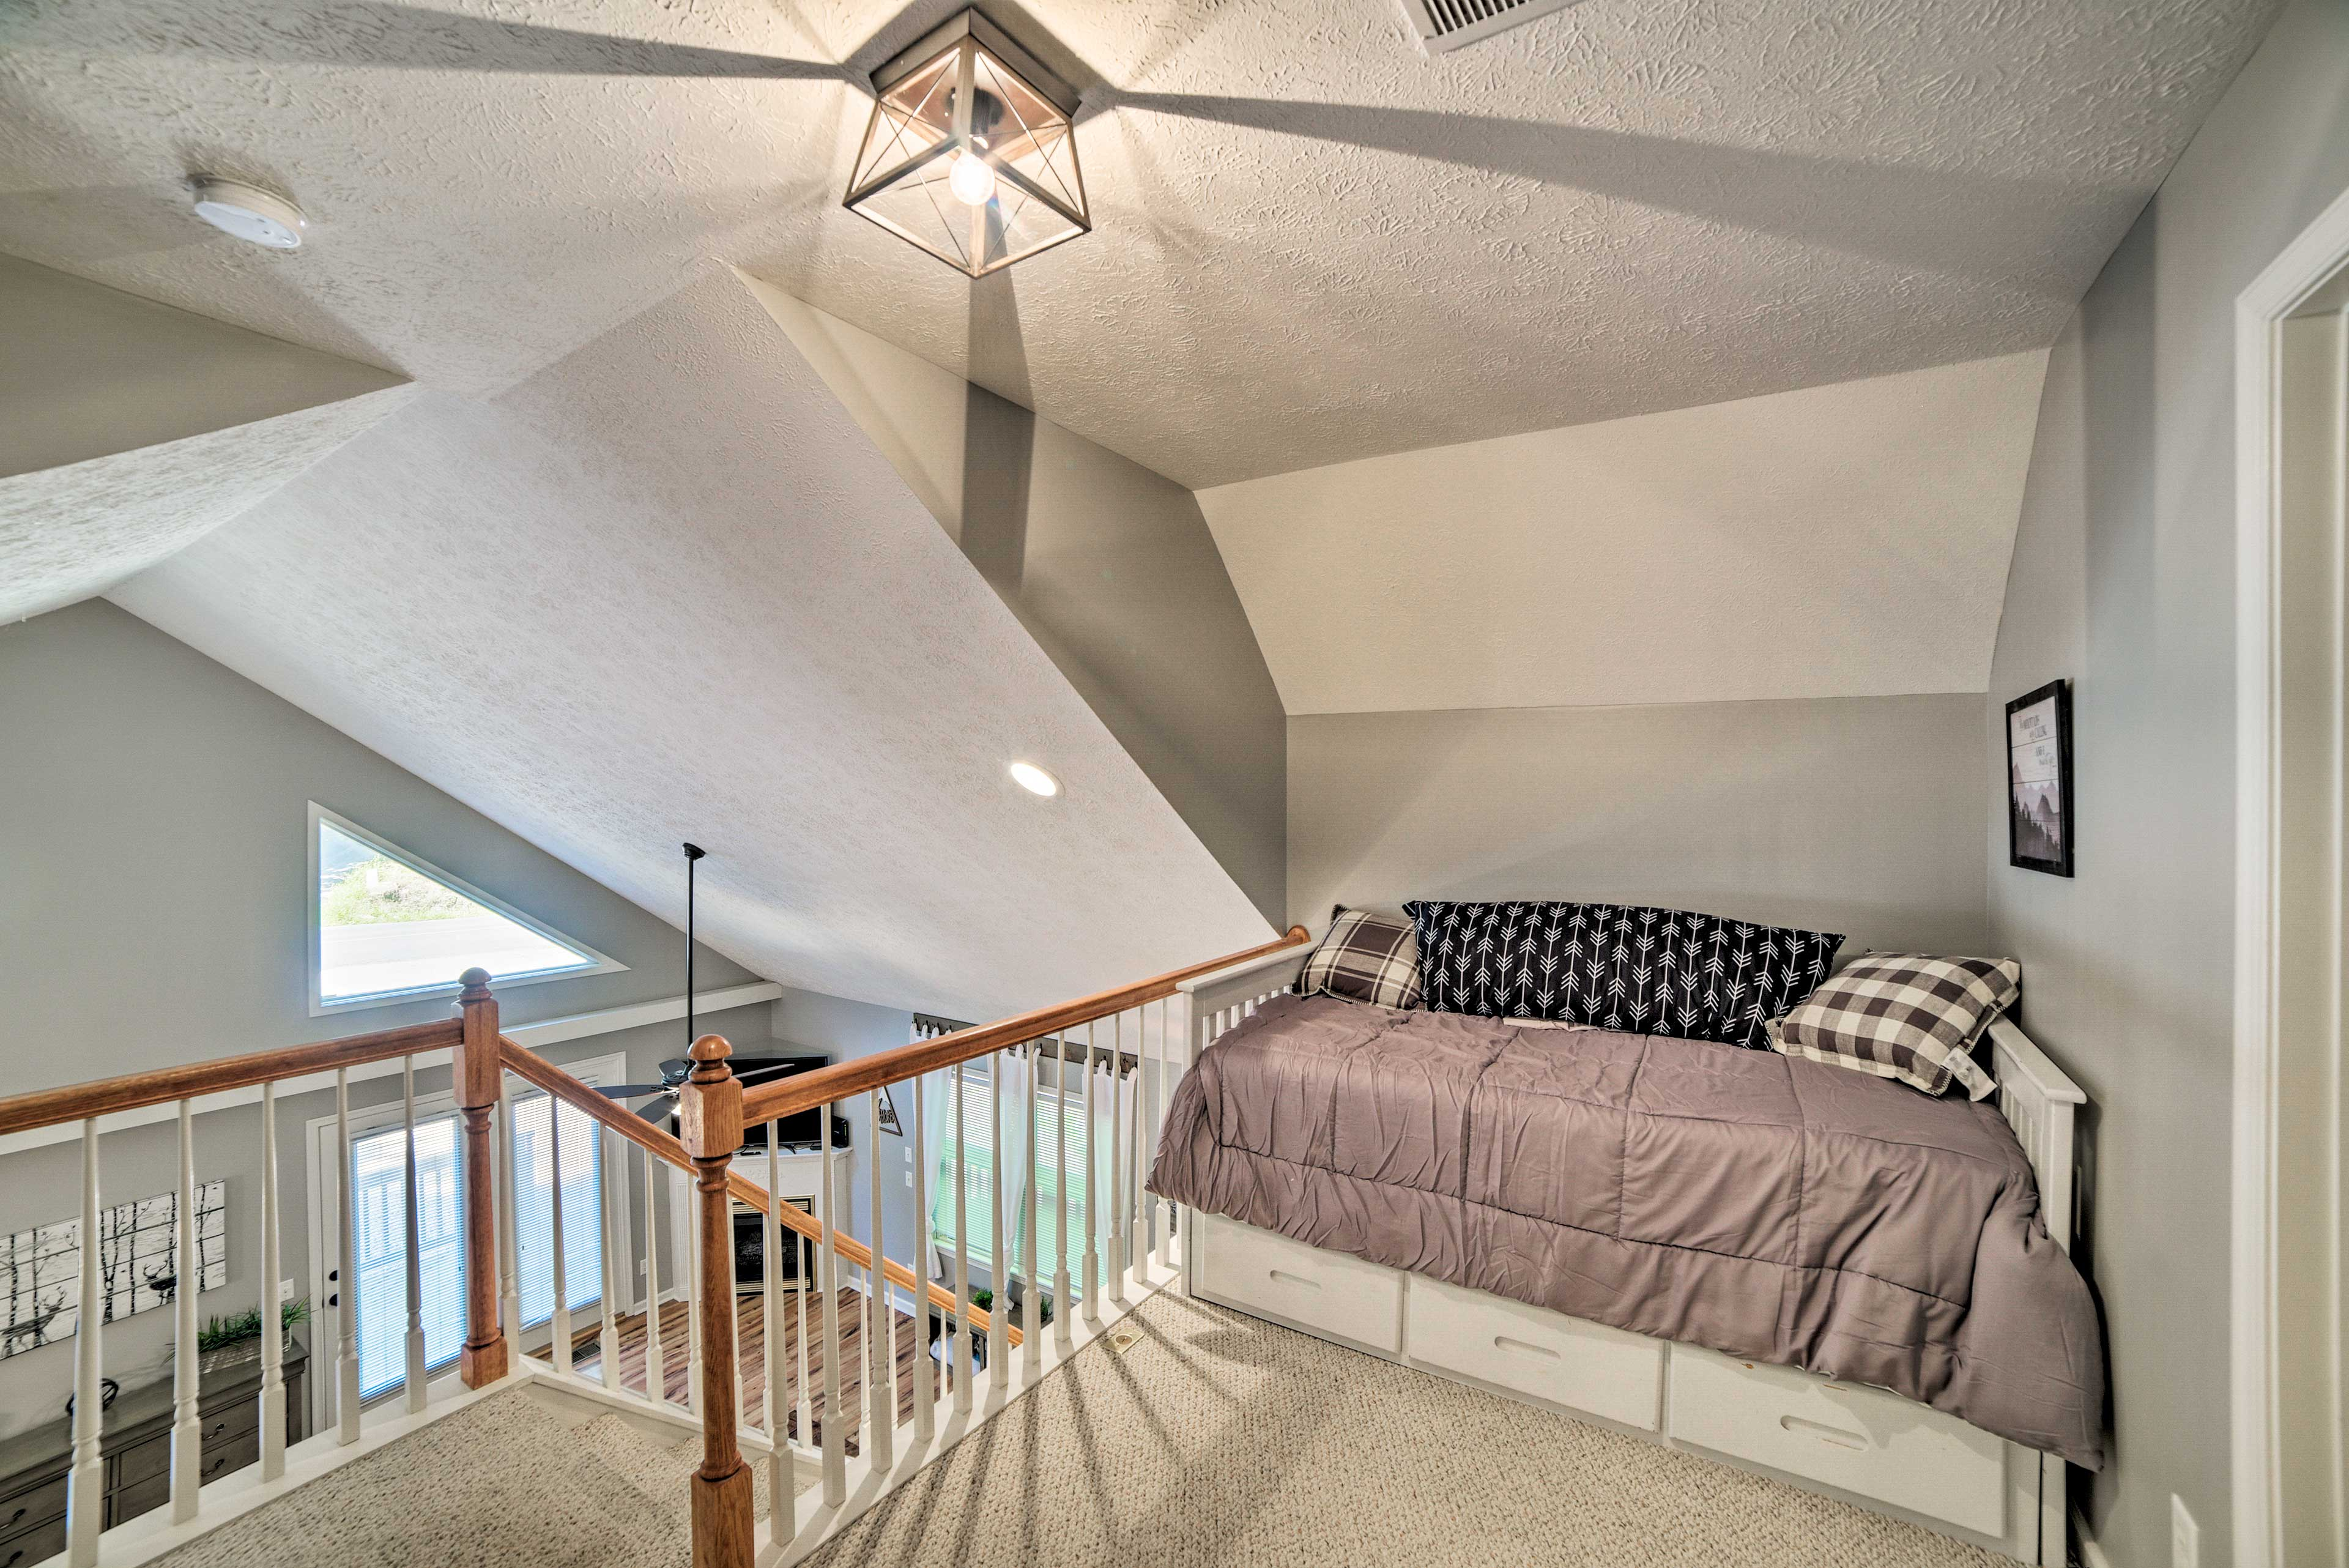 Another 2 guests can get comfy in the loft, featuring a twin daybed & trundle.